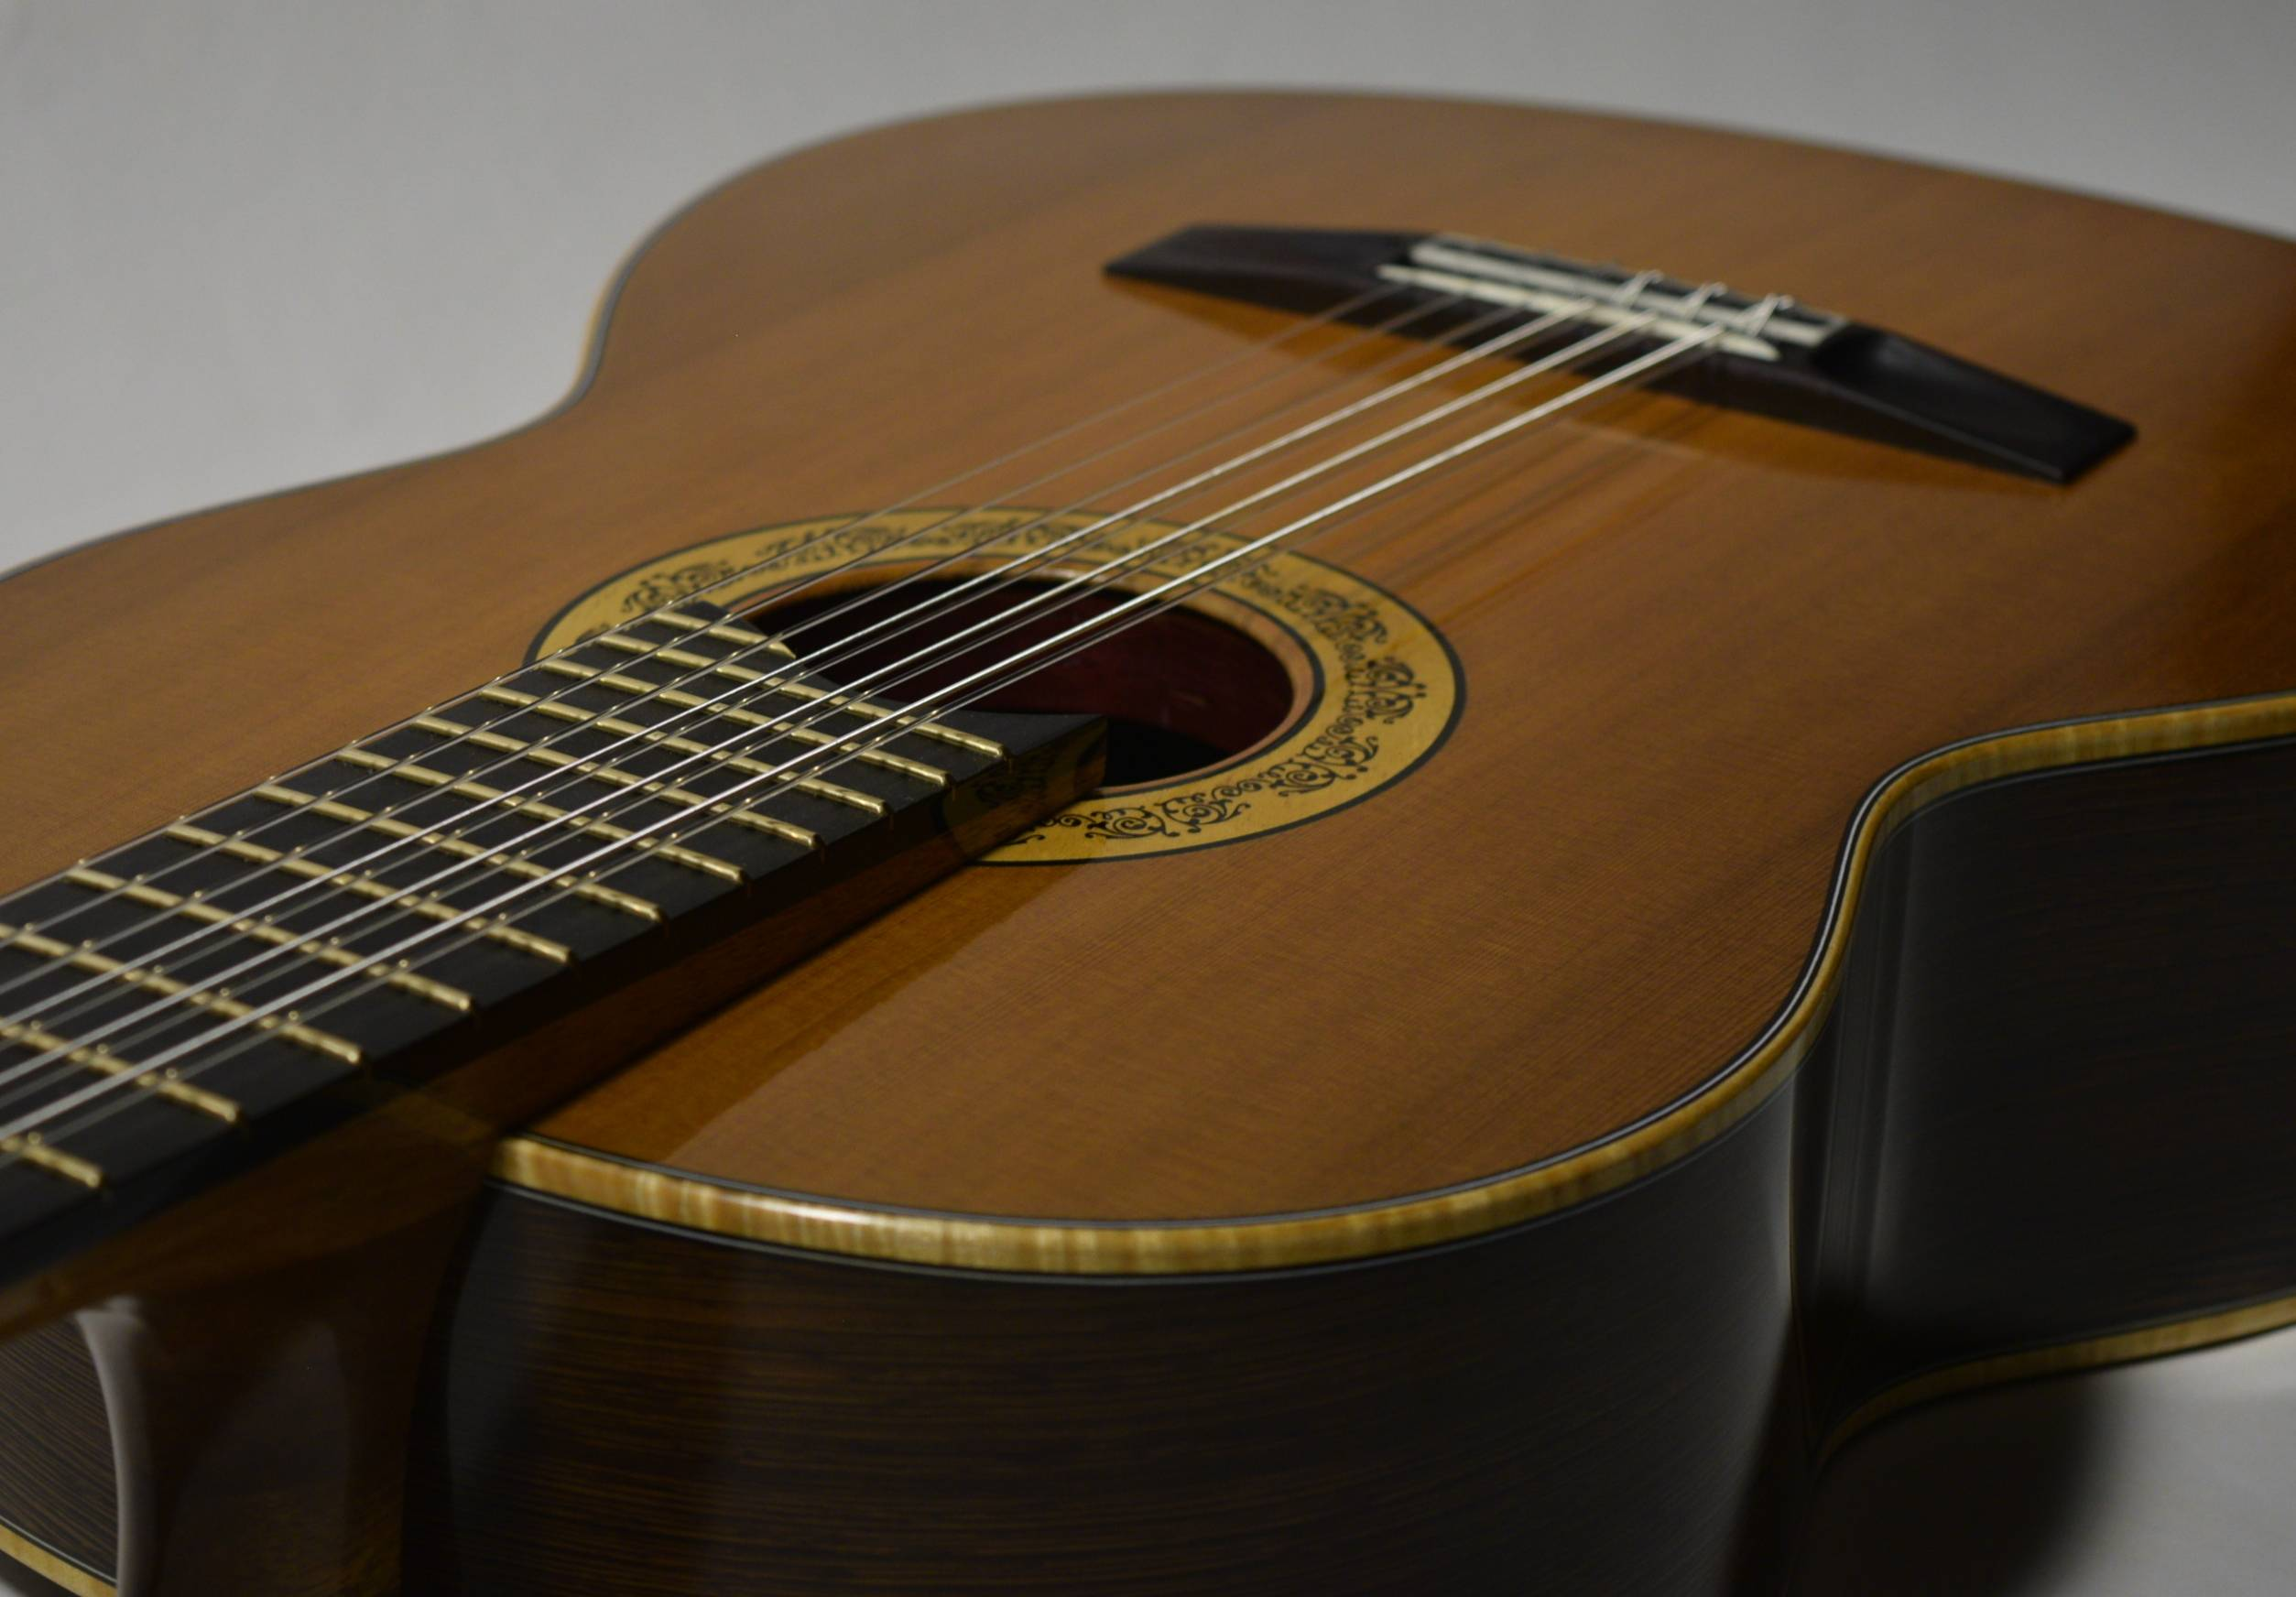 Giving the Baroque guitar repertoire new life in a modern design